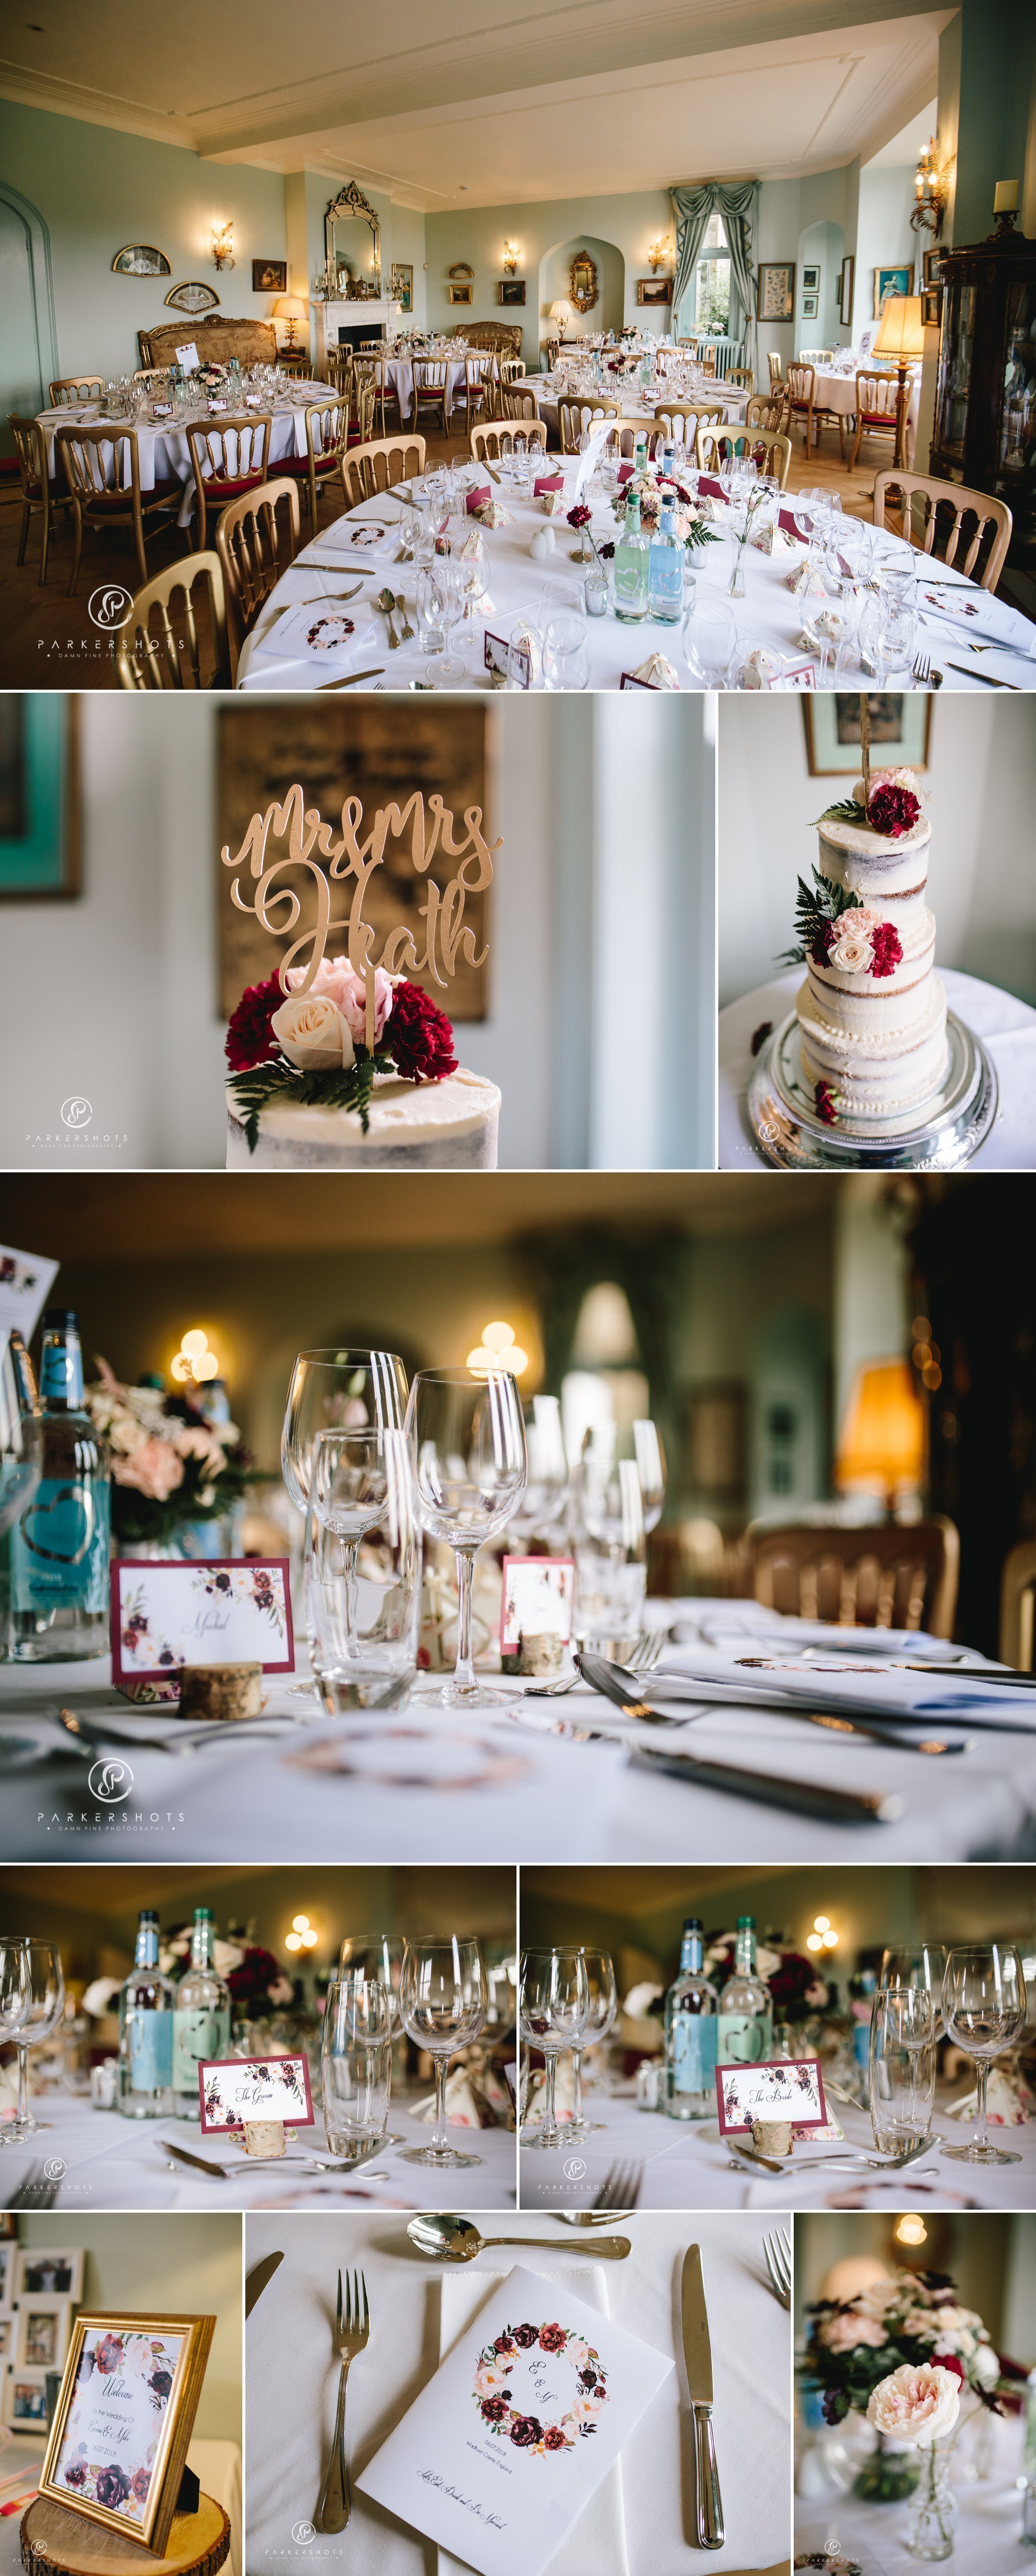 Wadhurst Castle Wedding Photographer - The wedding breakfast room